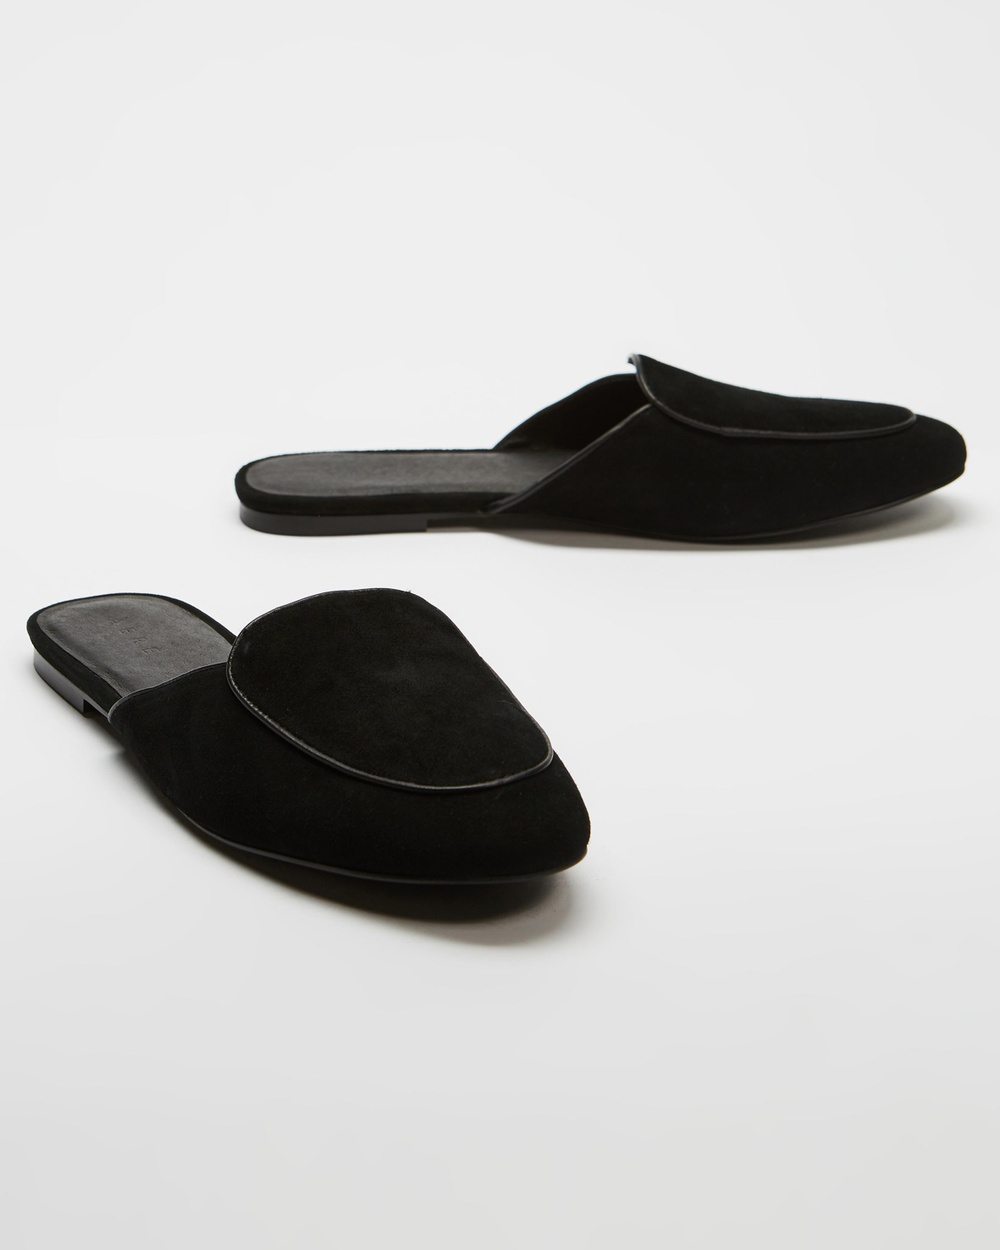 AERE Loafer Leather Mules Shoes Black Suede